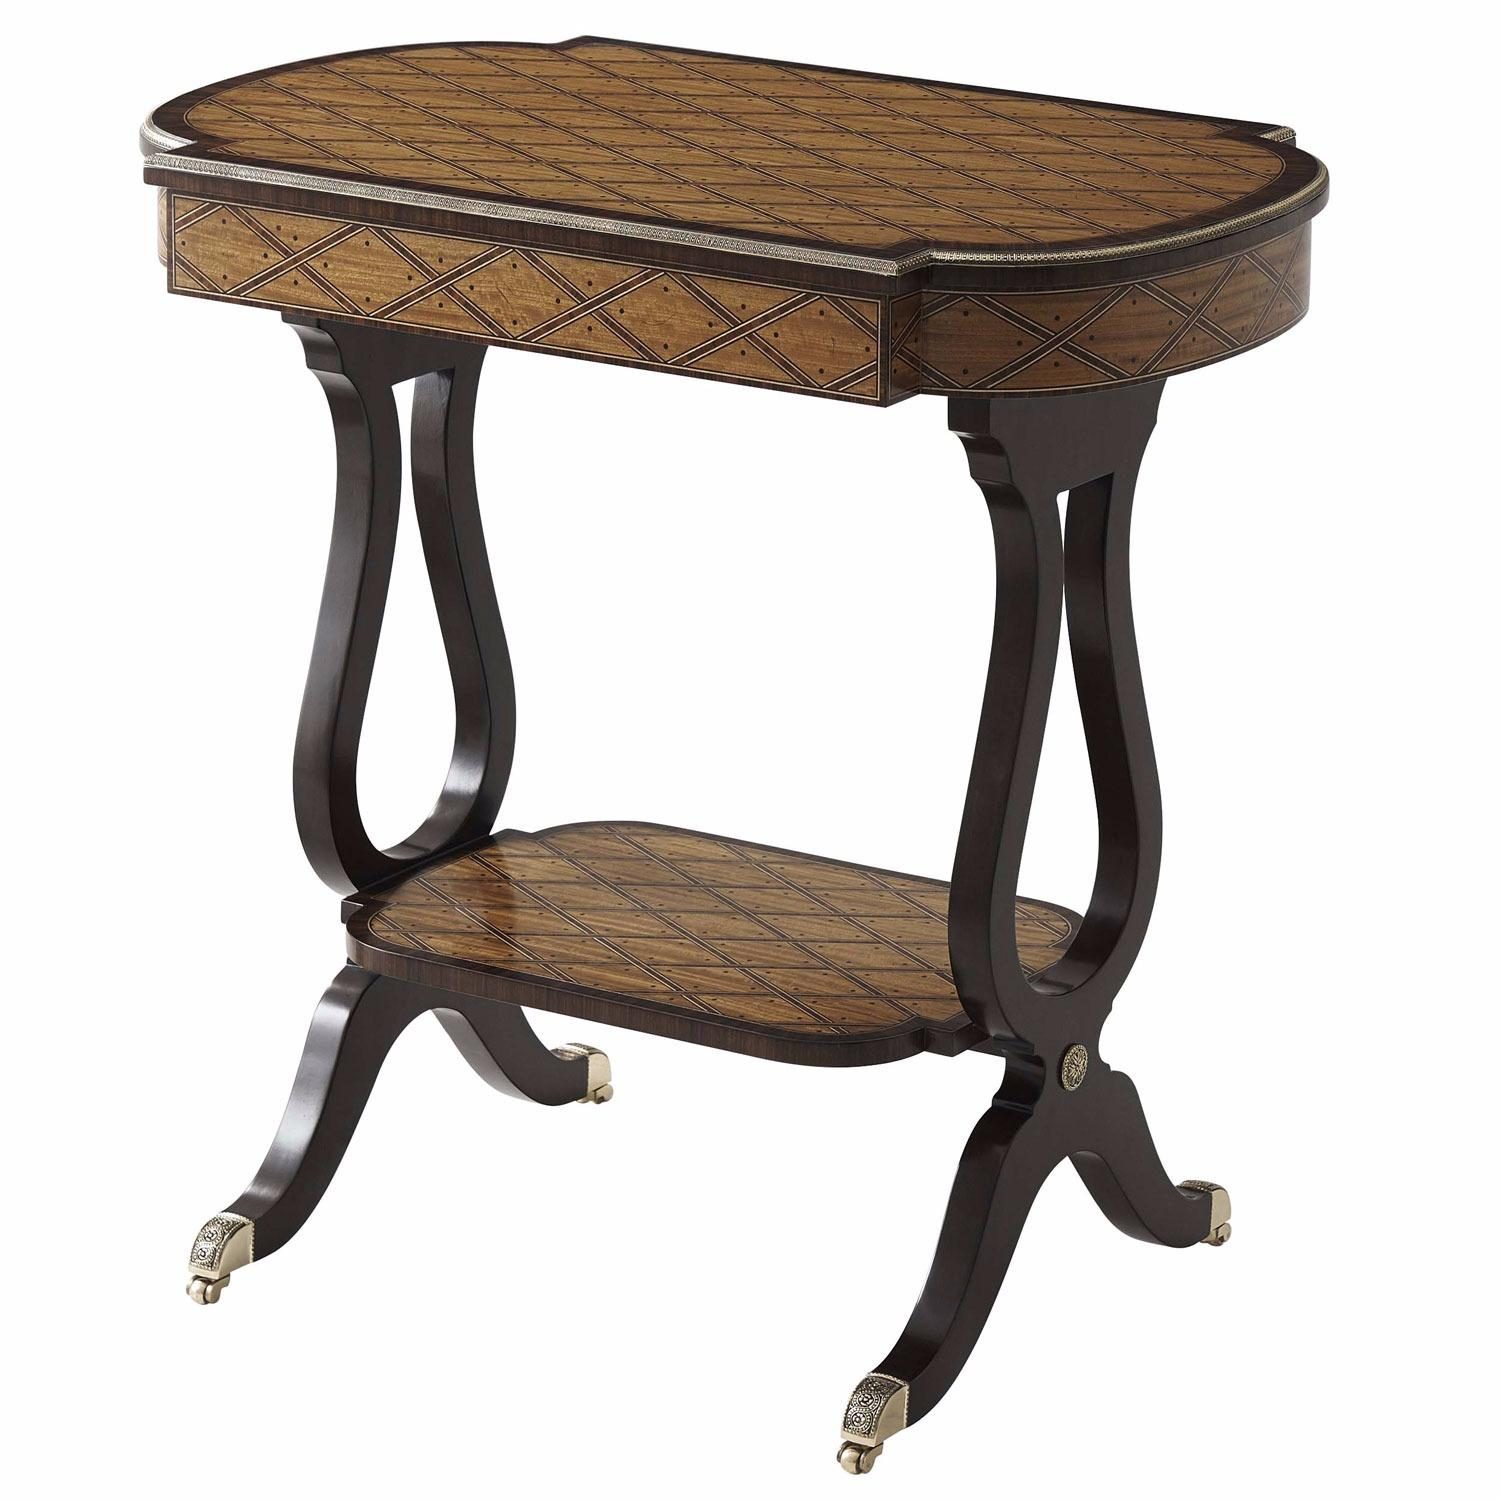 Beeswing banded accent table